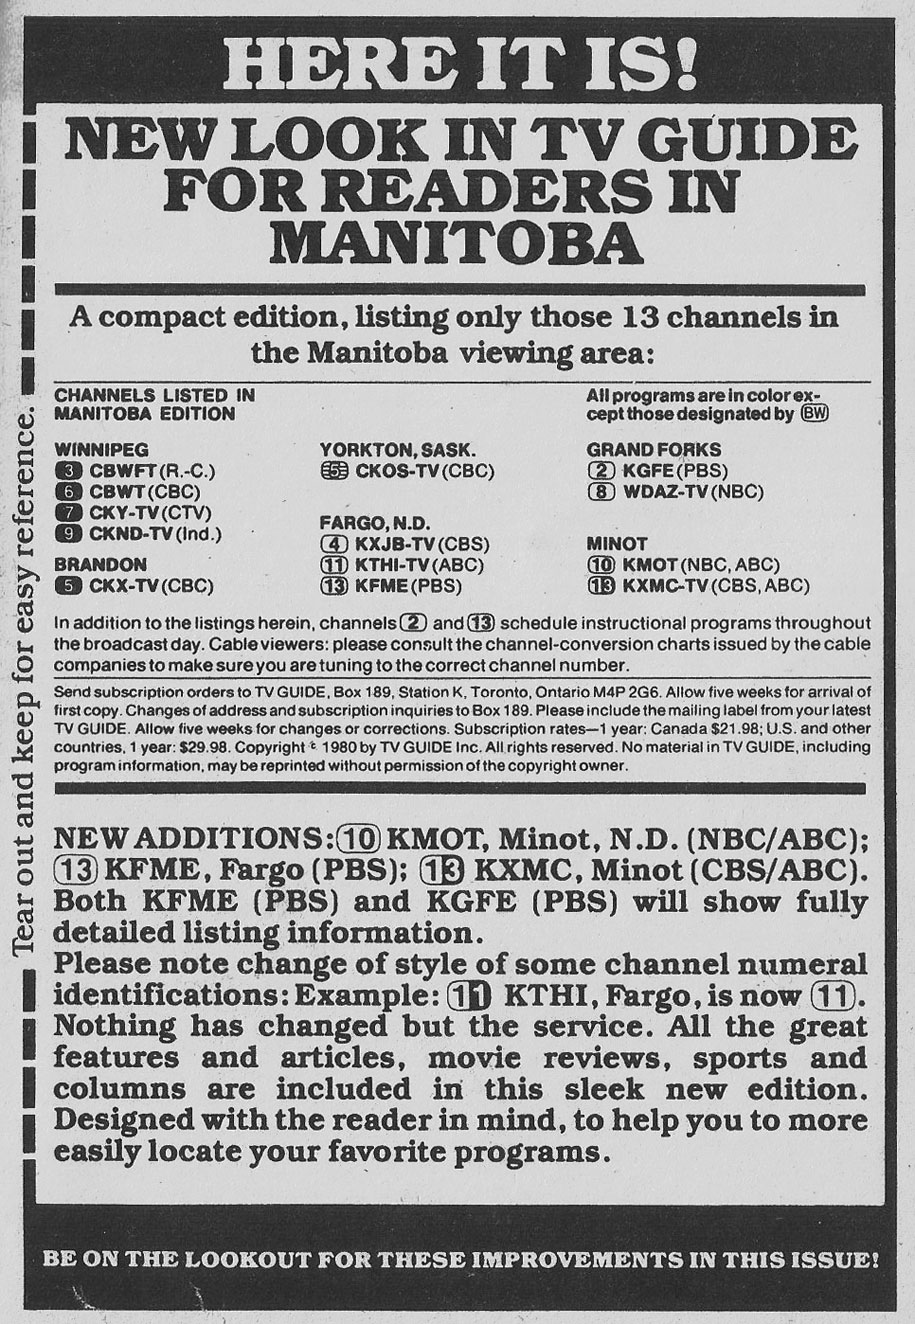 TV Guide February 9 1980 Manitoba Edition New Look in TV Guide for Manitoba